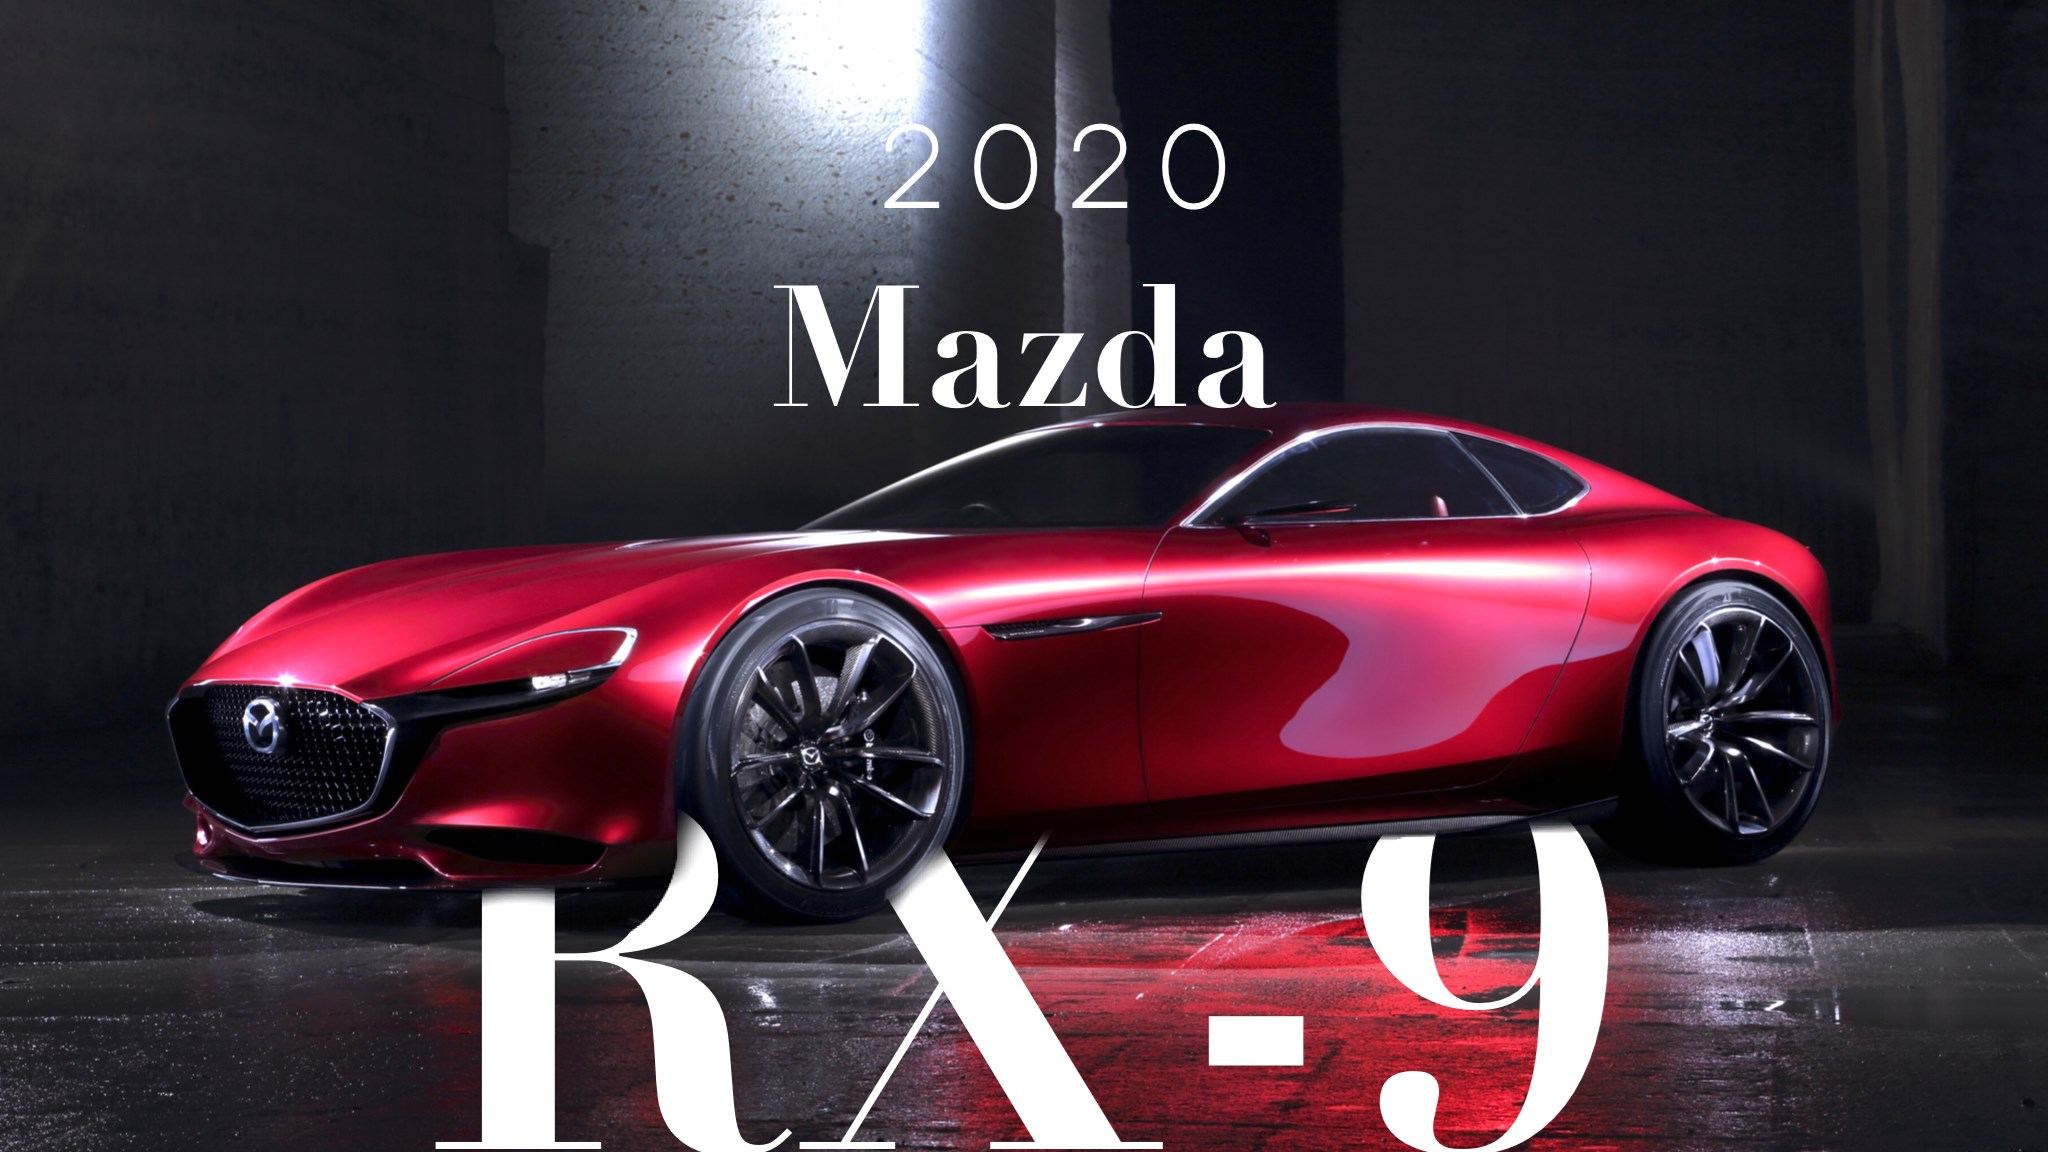 2020 Reveal For Mazda's 300kW RX-9?